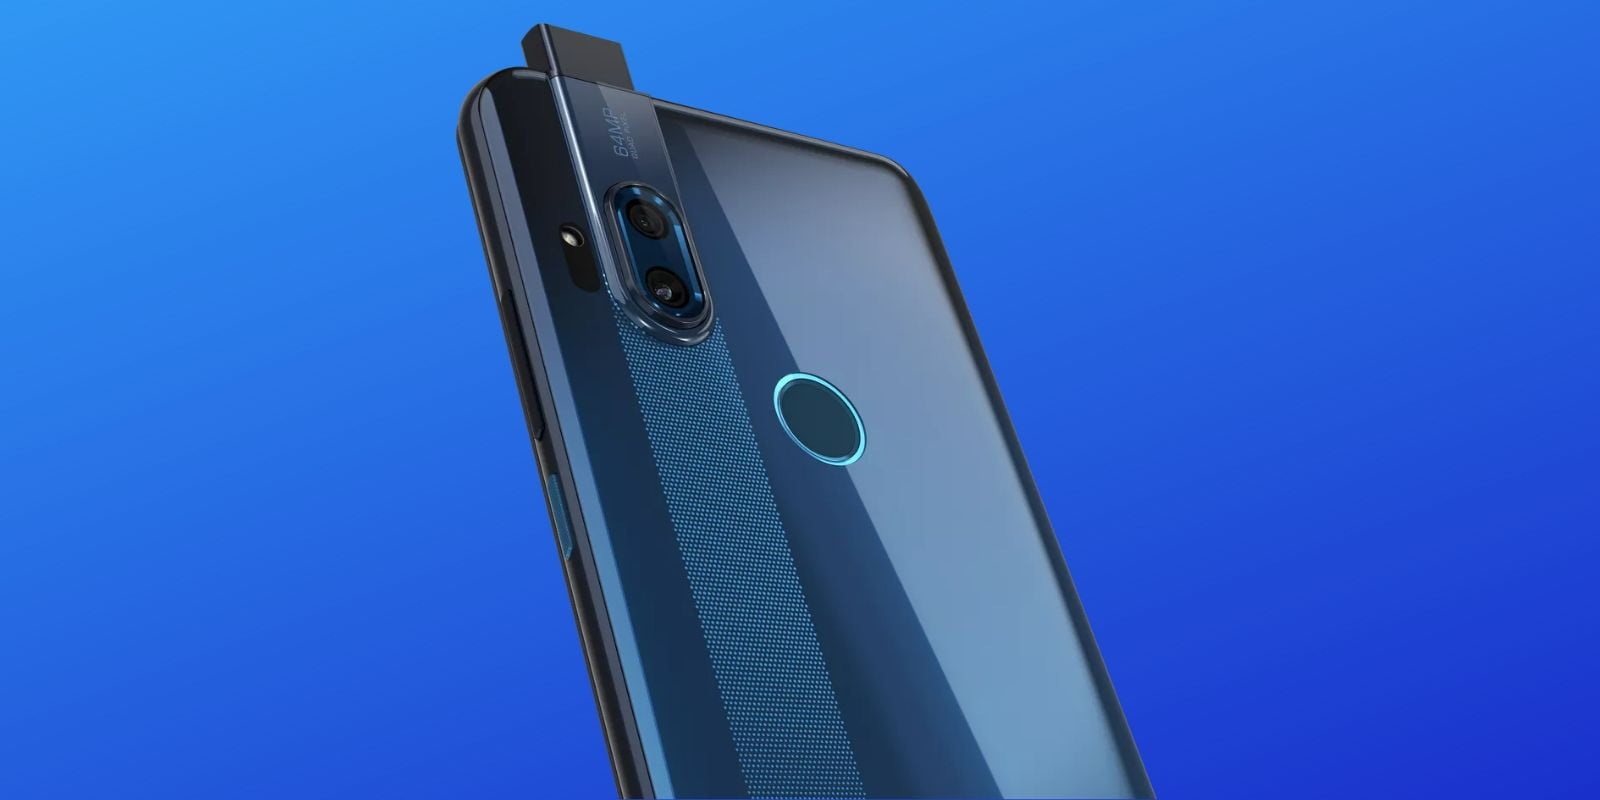 Motorola One Hyper rear camera